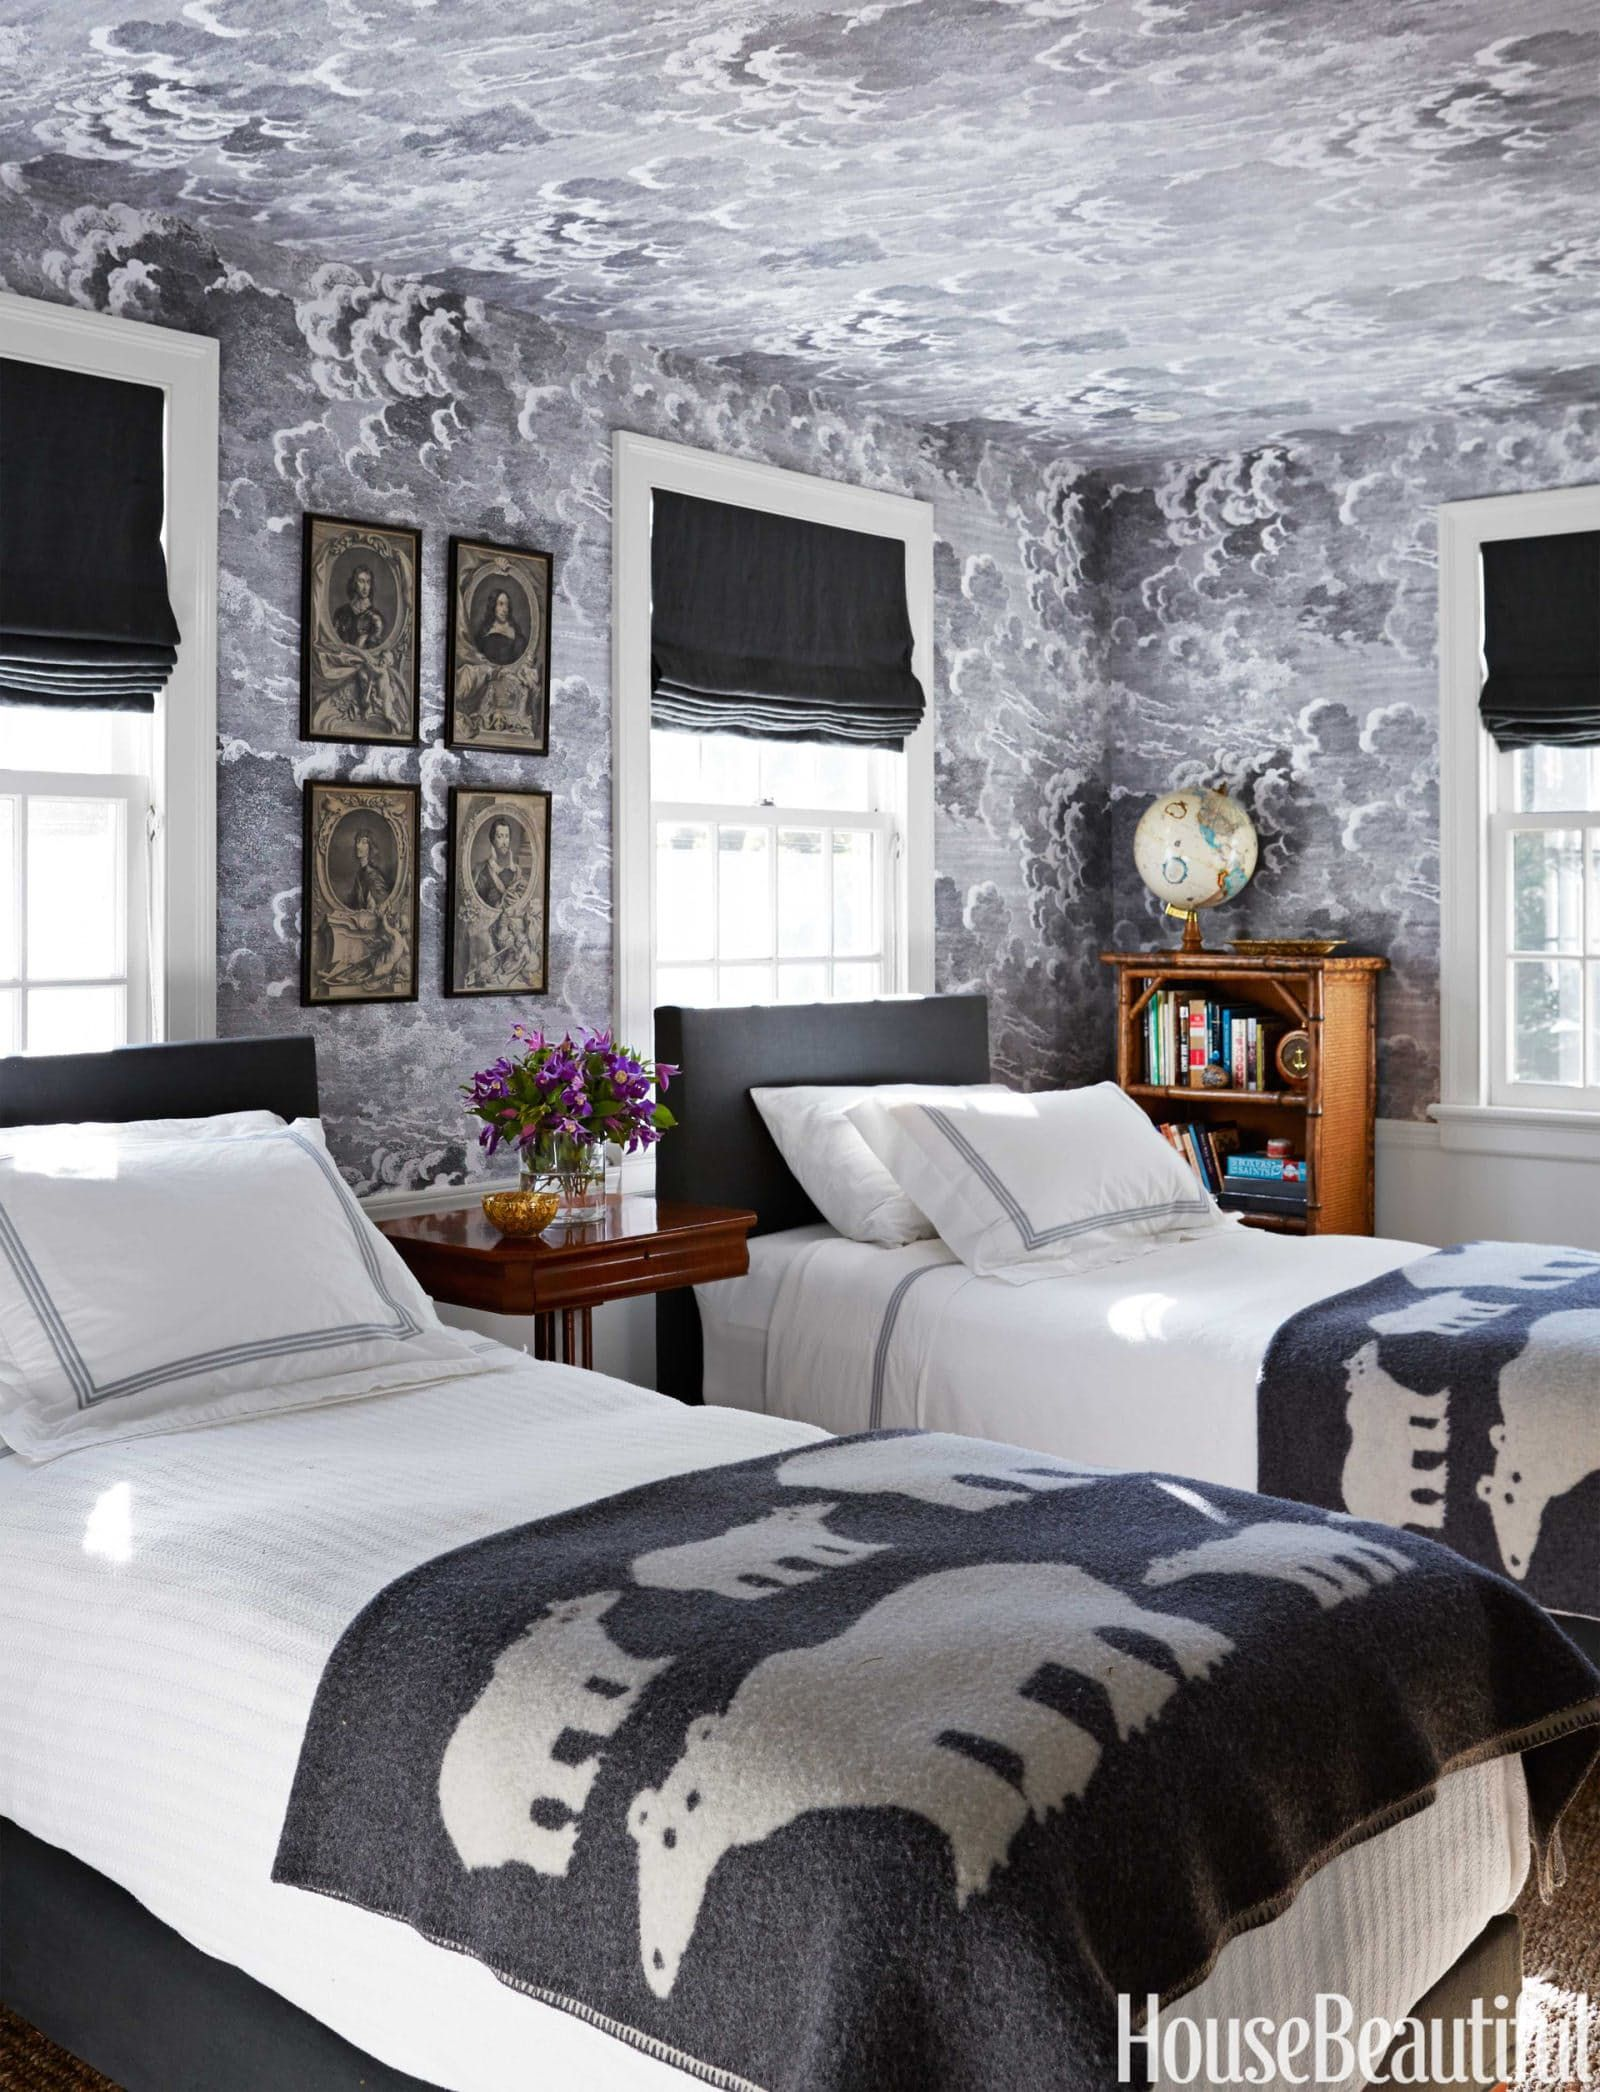 Best Look We Love Eye Catching Wallpaper In The Bedroom Home Wallpaper Home Interior 400 x 300